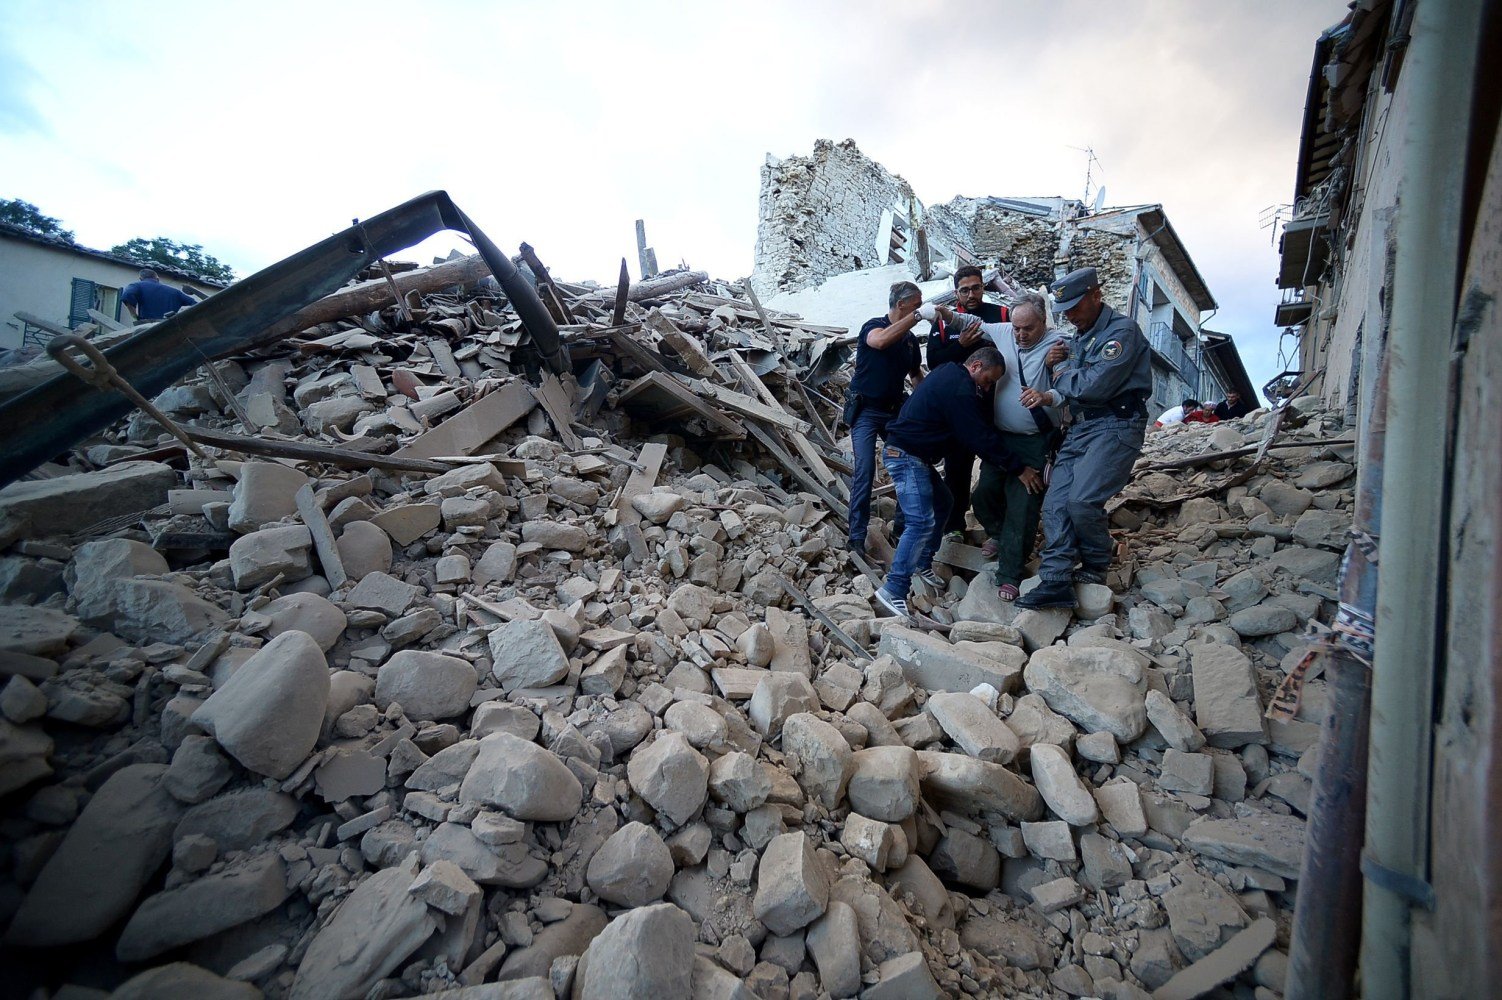 Scenes From Italy's Earthquake: The Ancient Town of ...